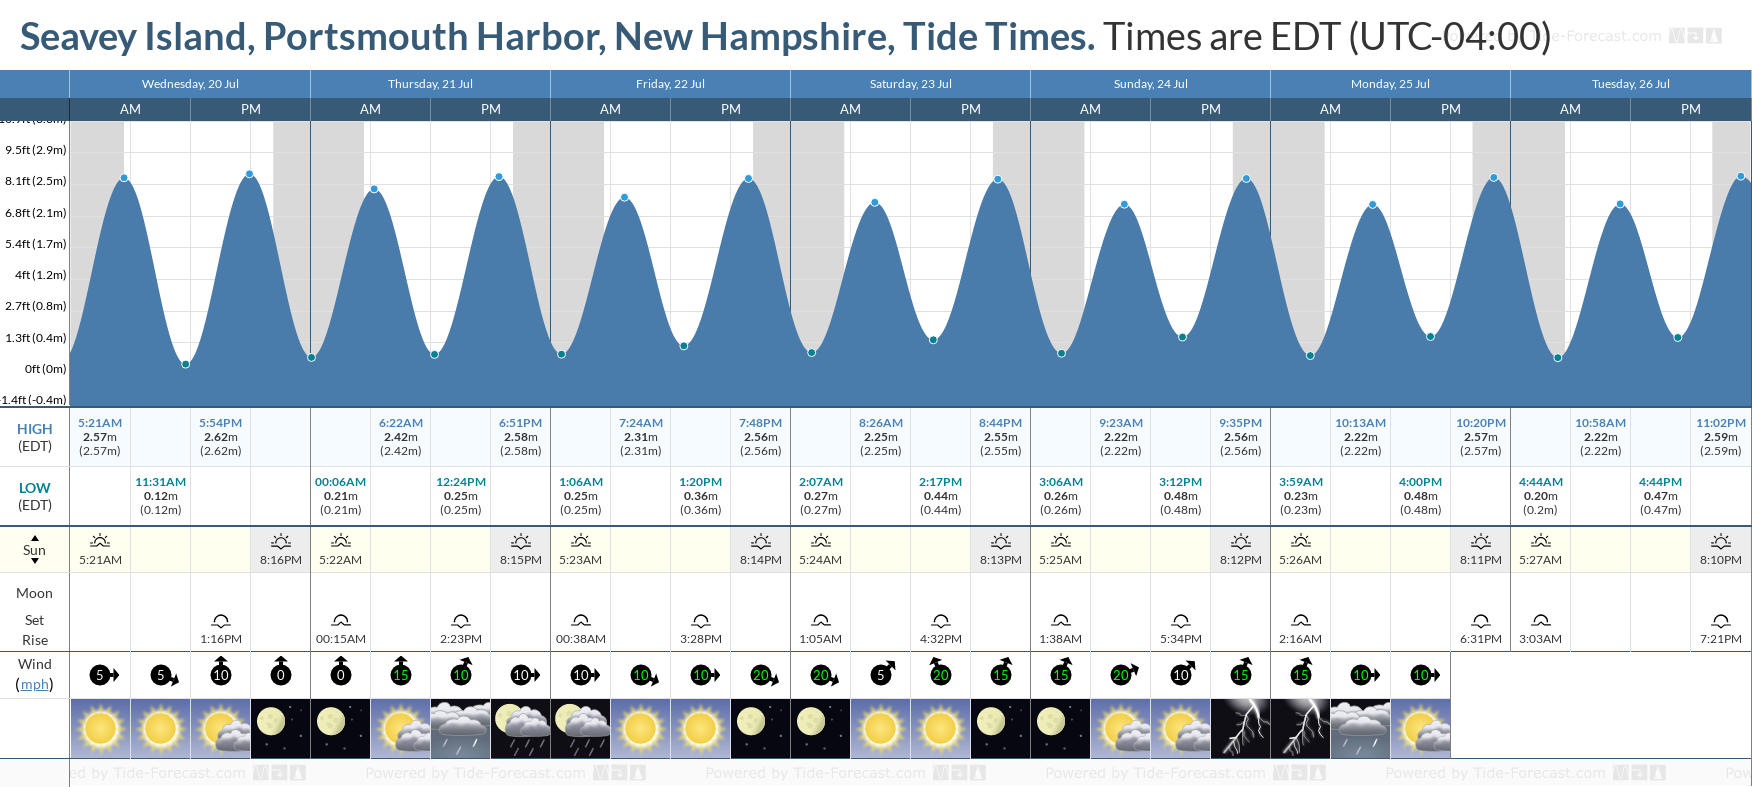 Seavey Island, Portsmouth Harbor, New Hampshire Tide Chart including high and low tide tide times for the next 7 days